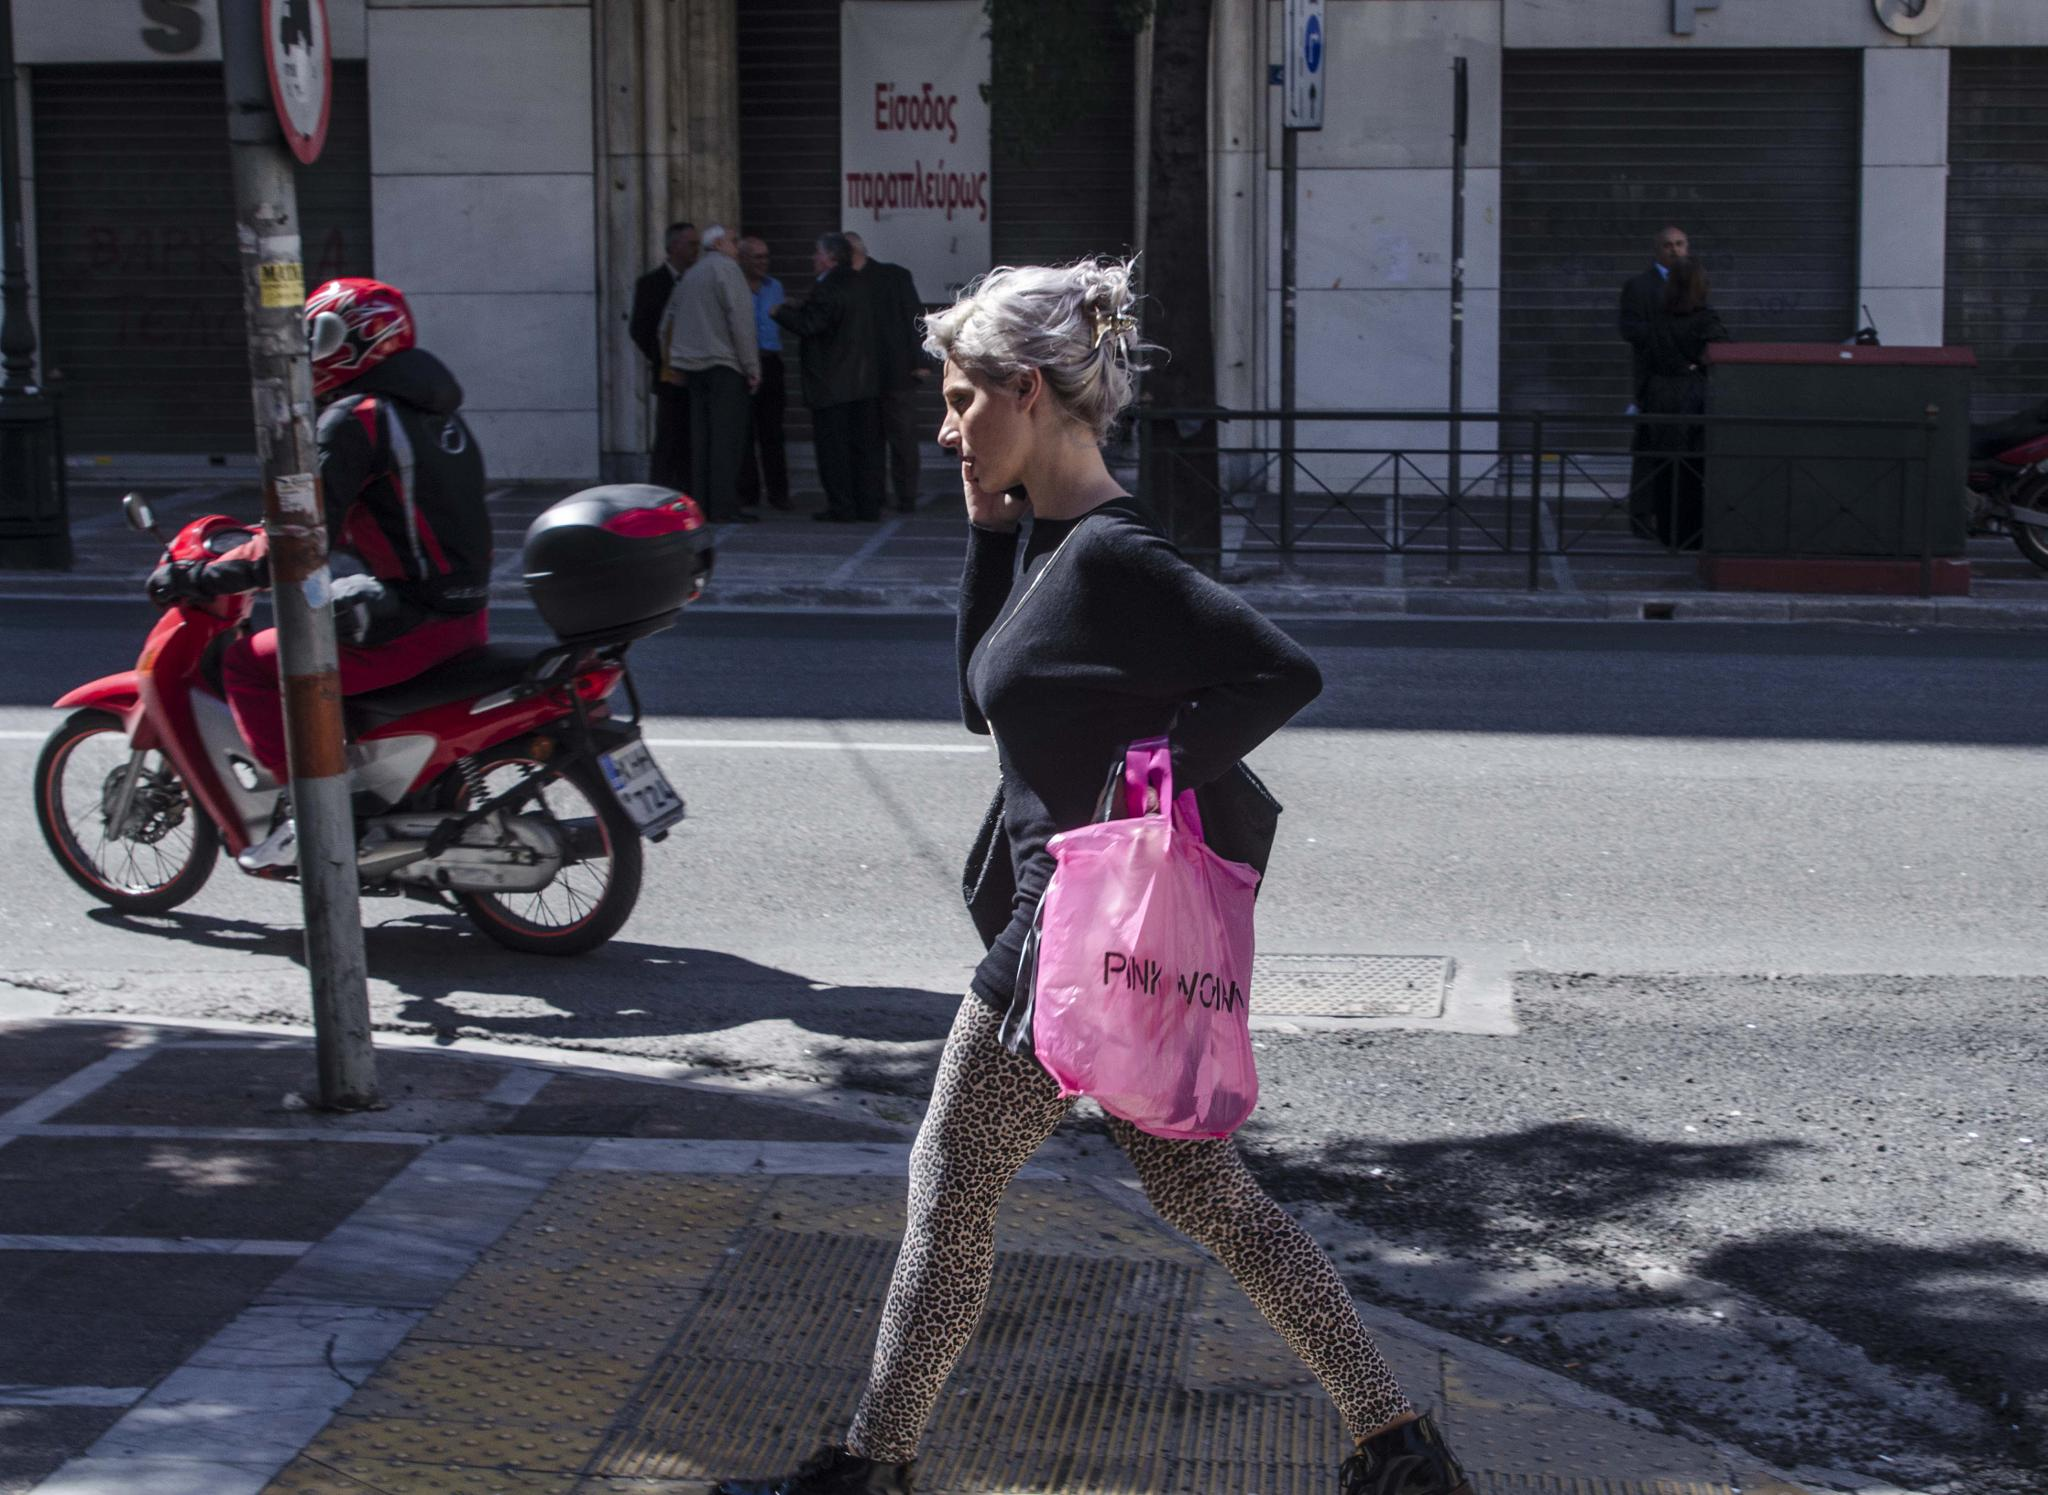 pink woman 2014 by yiannis.lazaris